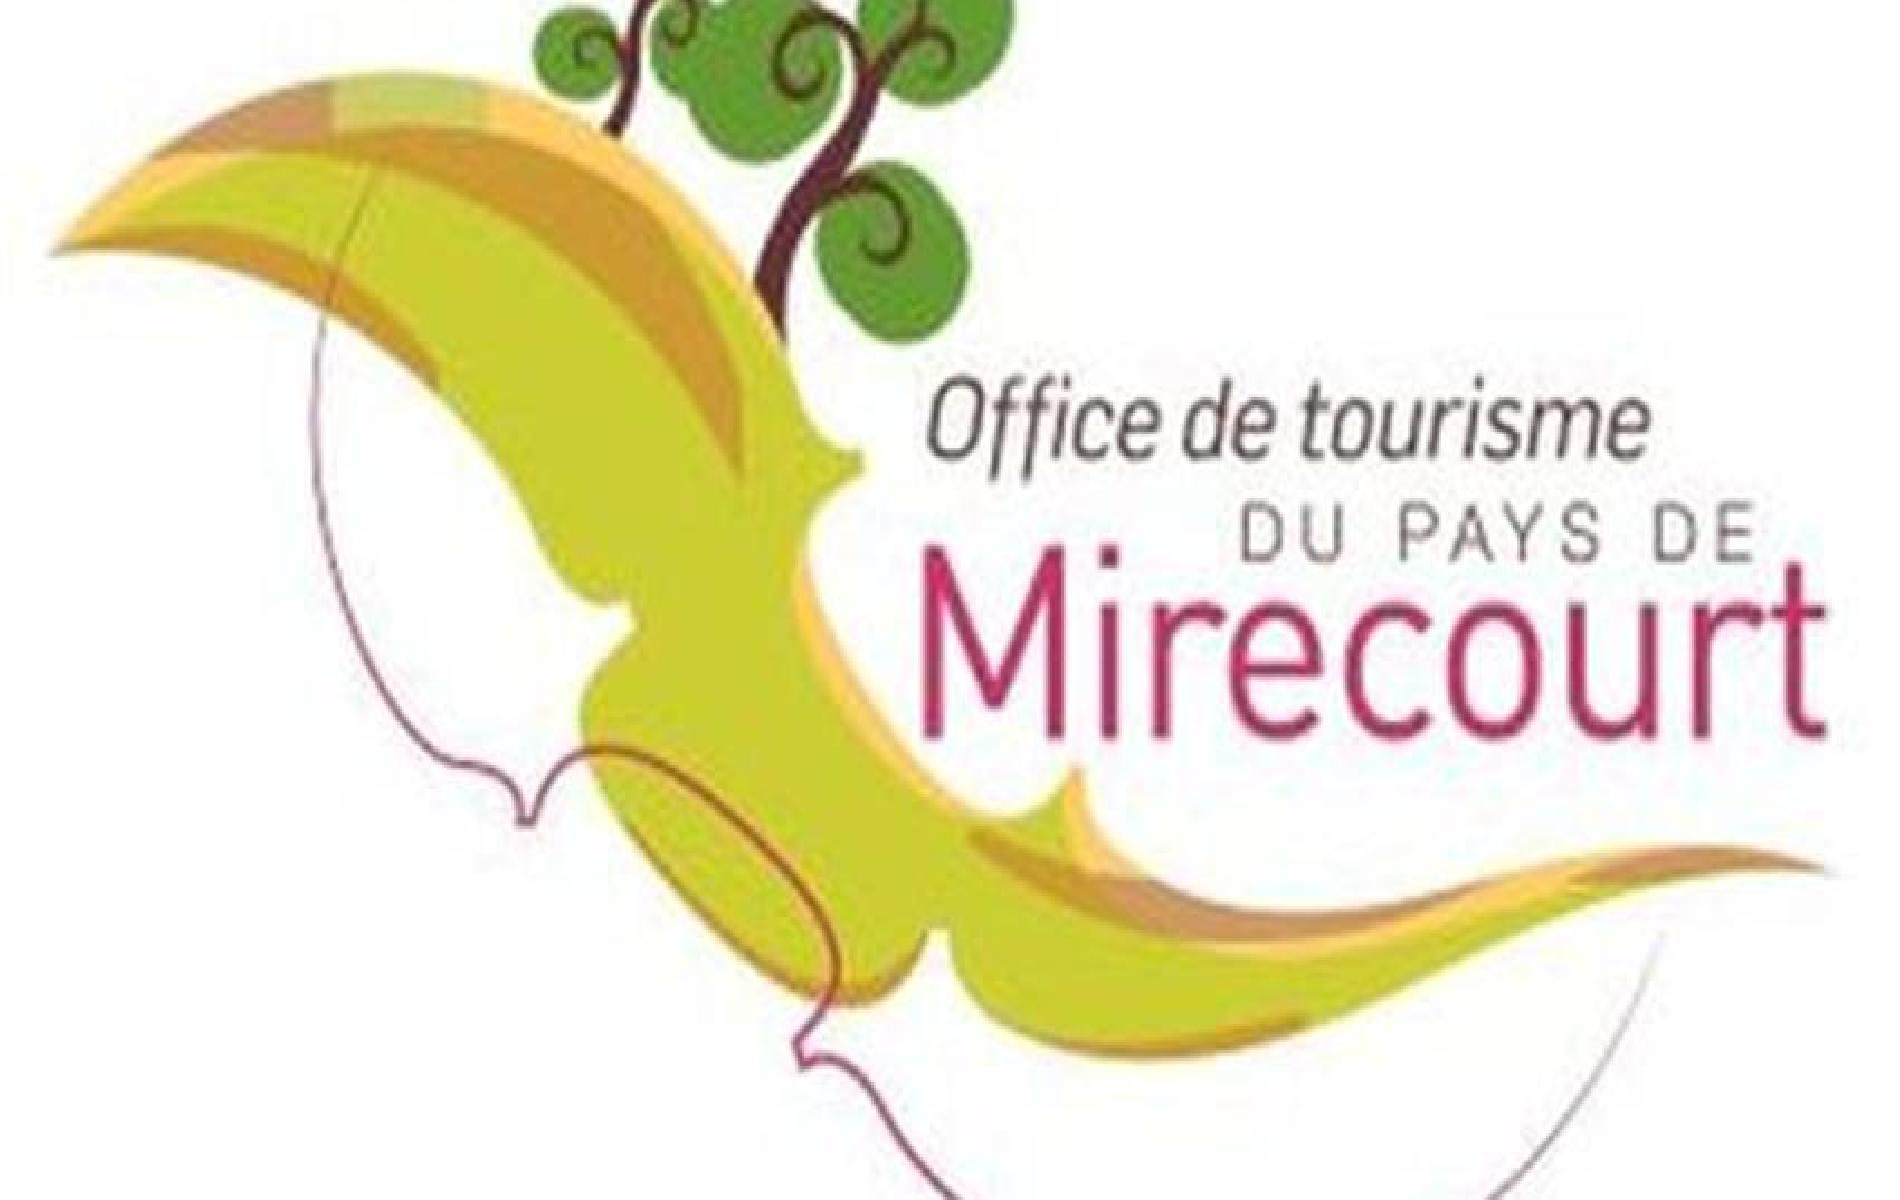 L'Office de tourisme de Mirecourt